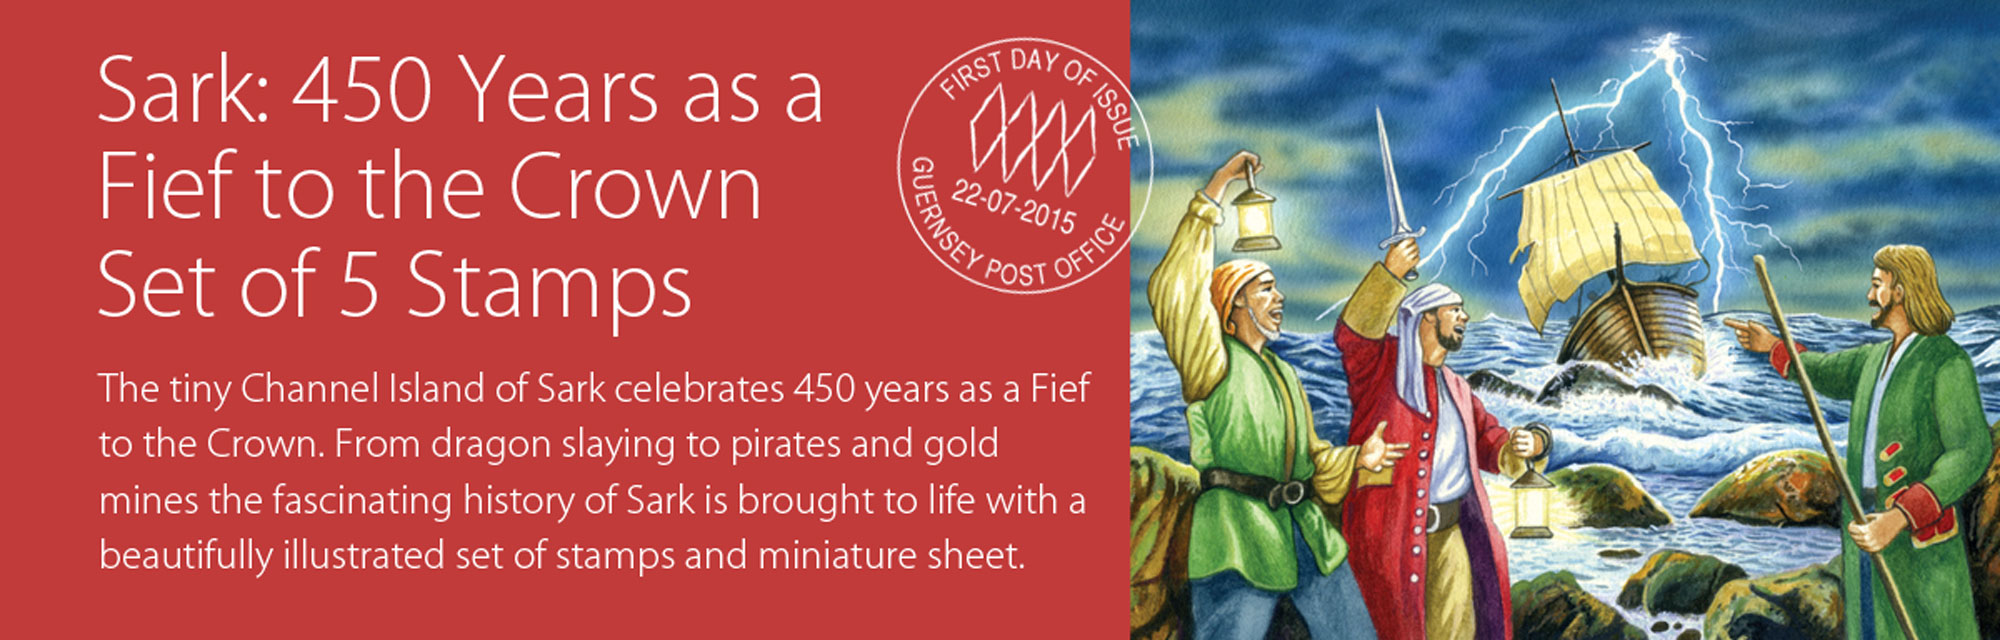 Sark 450 Years as a Fief to the Crown